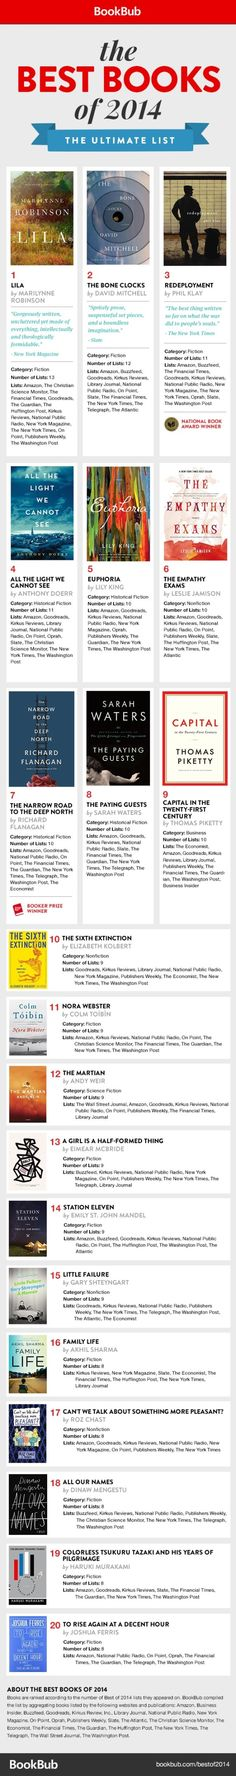 The best books of 2014 - the ultimate list based on rankings from The New York Times, Goodreads, NPR, Publishers Weekly, and 20 other sources.